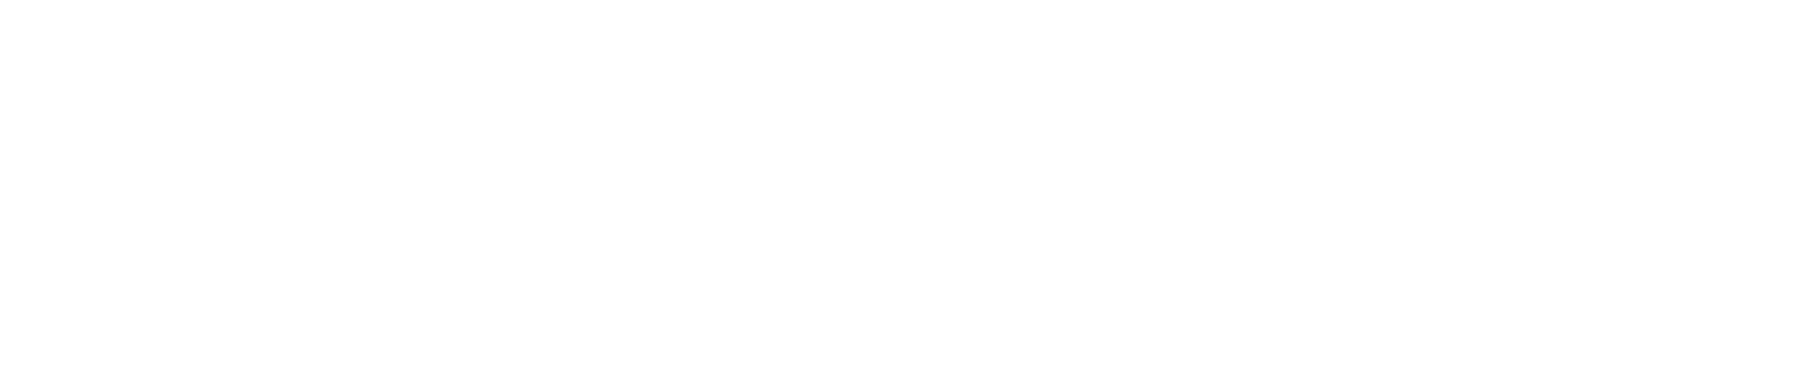 EHIS logo 1.png